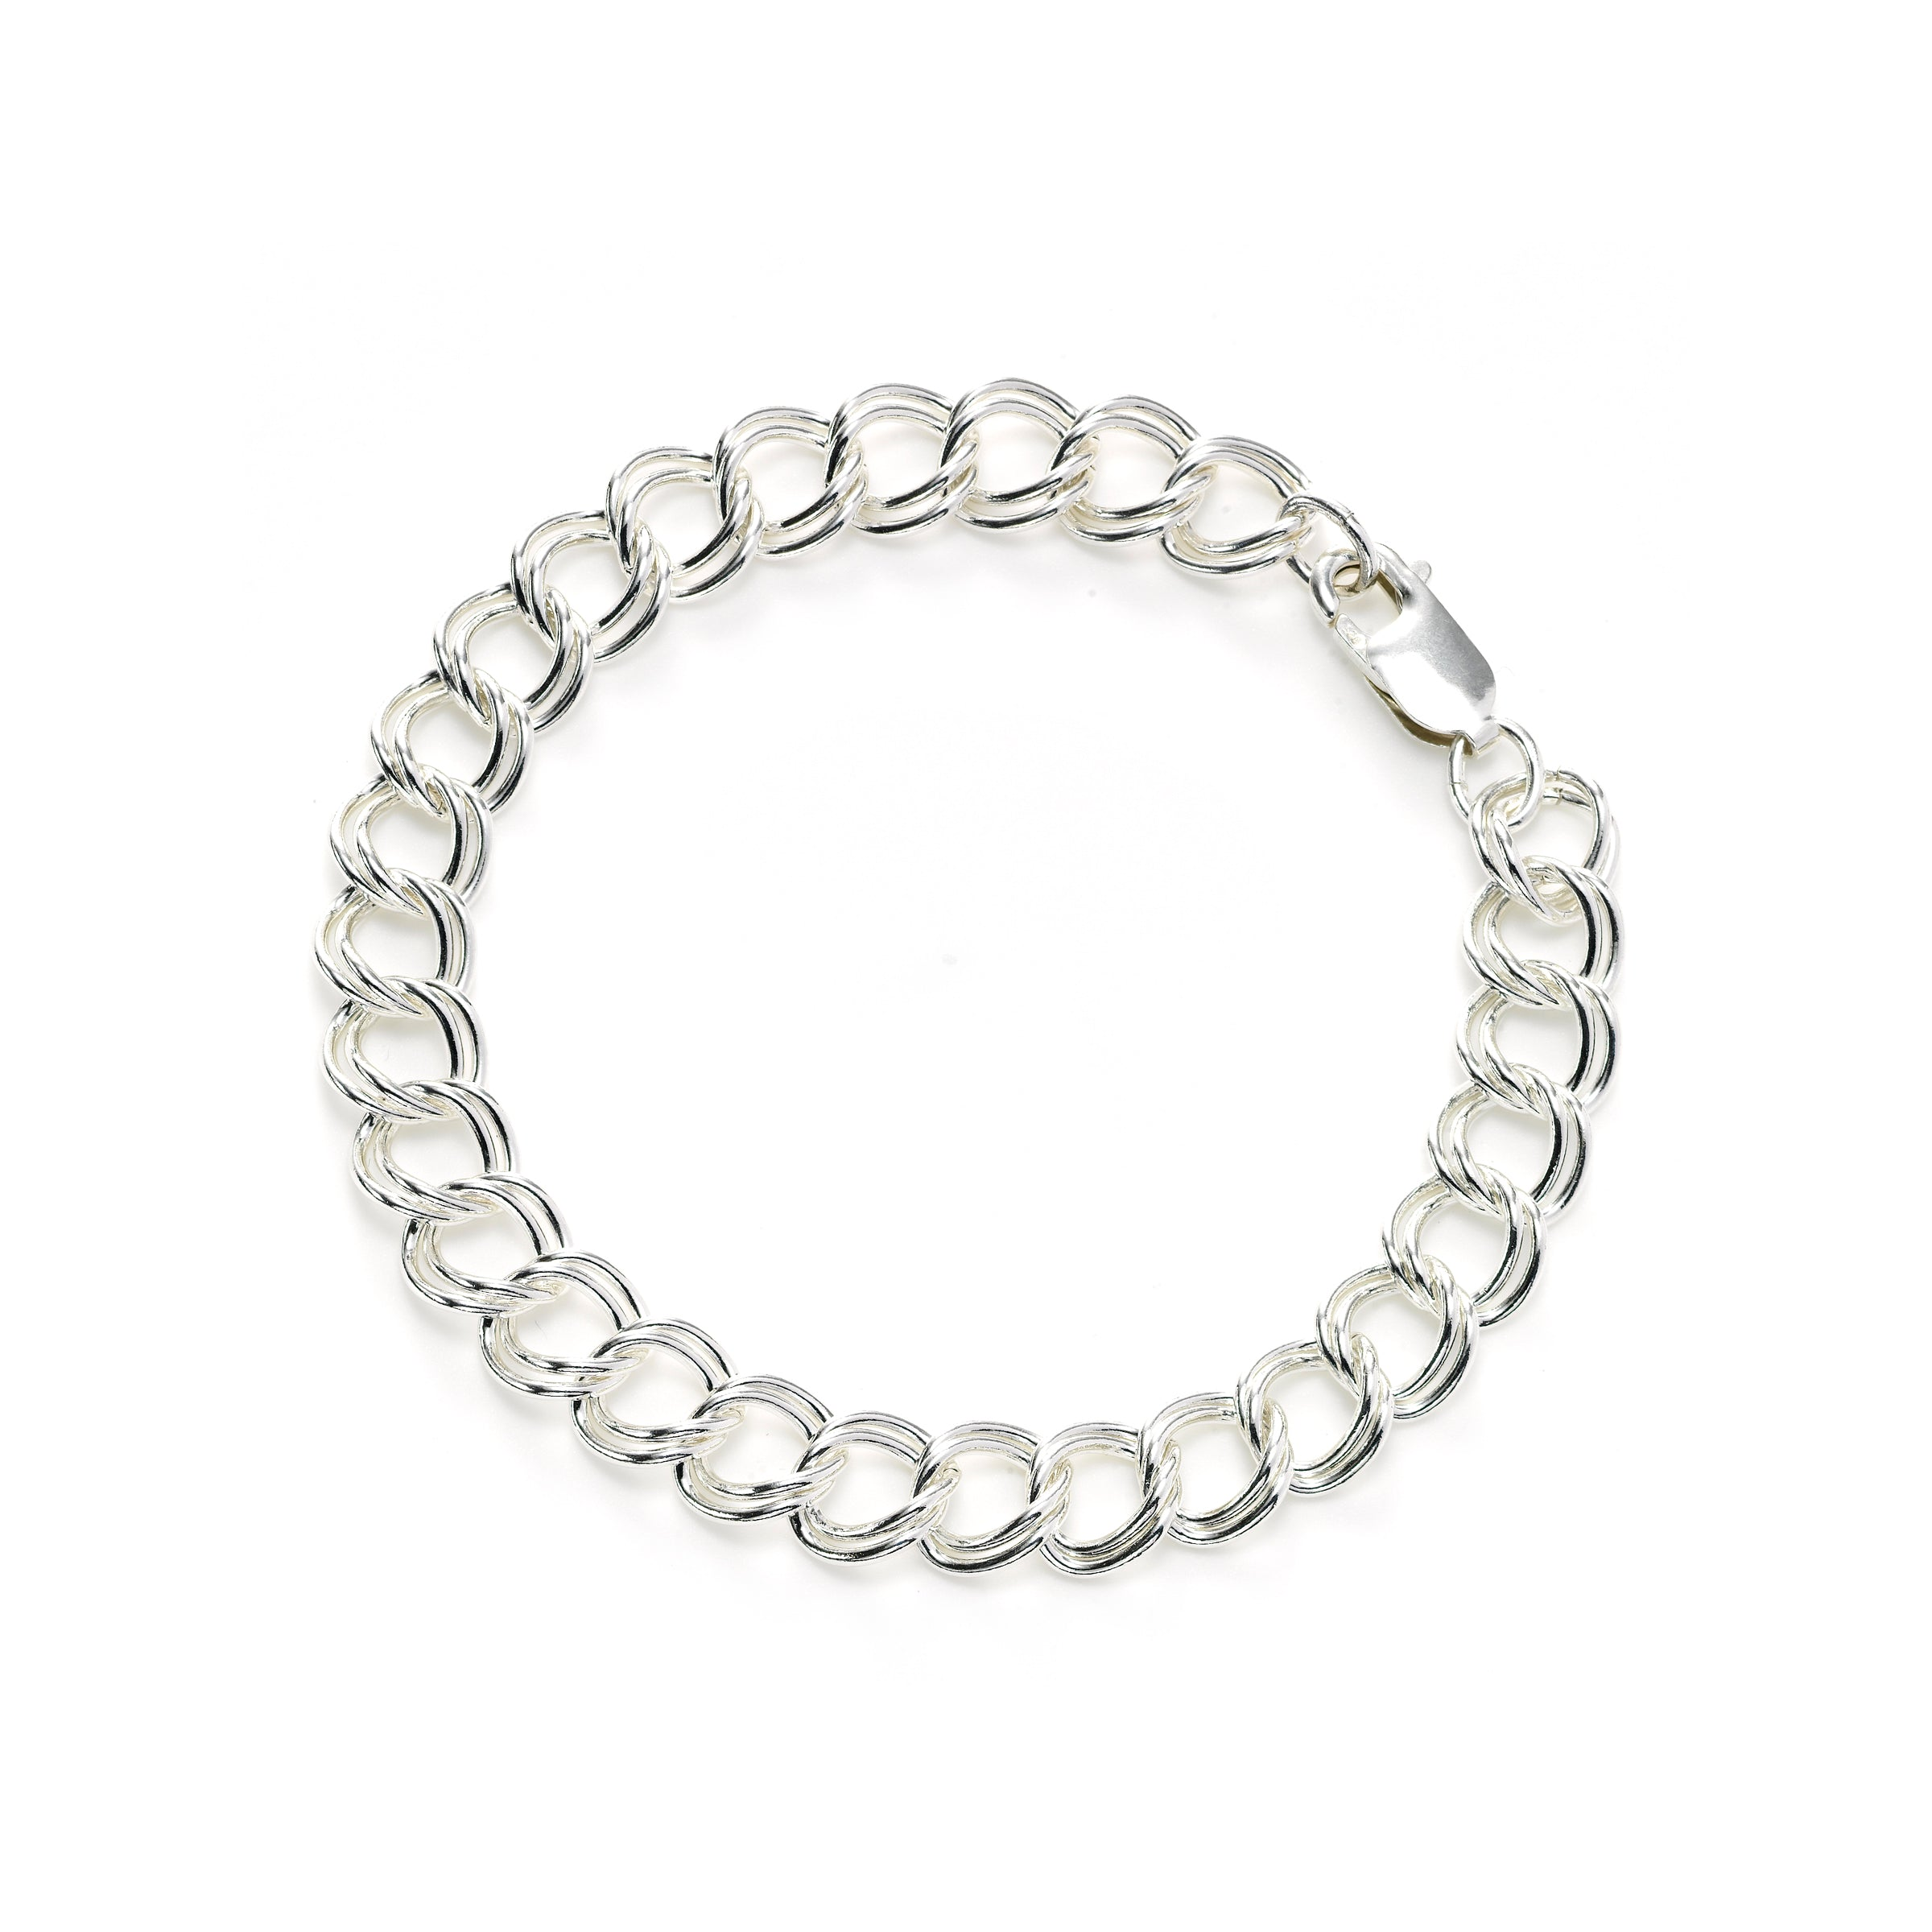 Open Chain Bracelet, Sterling Silver, 7.50 inches